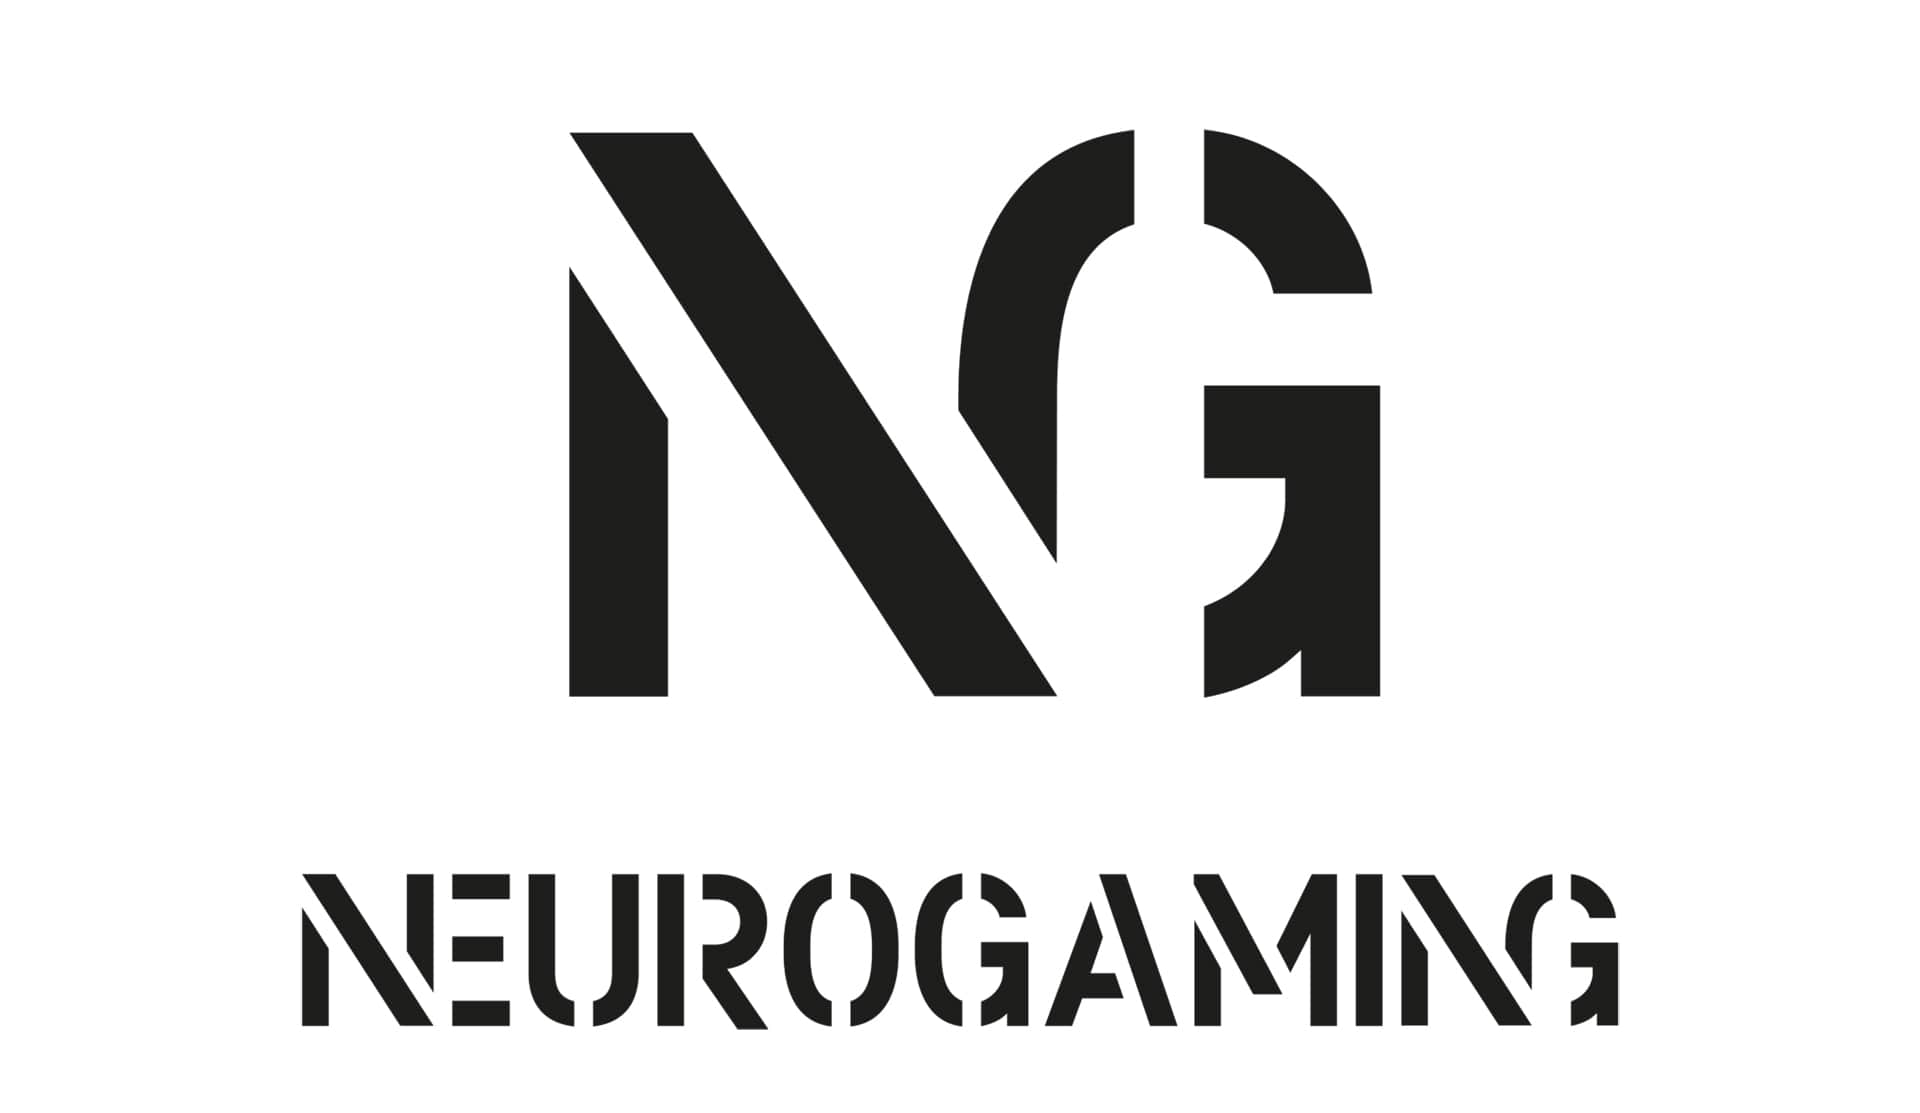 Cutting Edge Vr Gaming To Launch In The Uk For The First